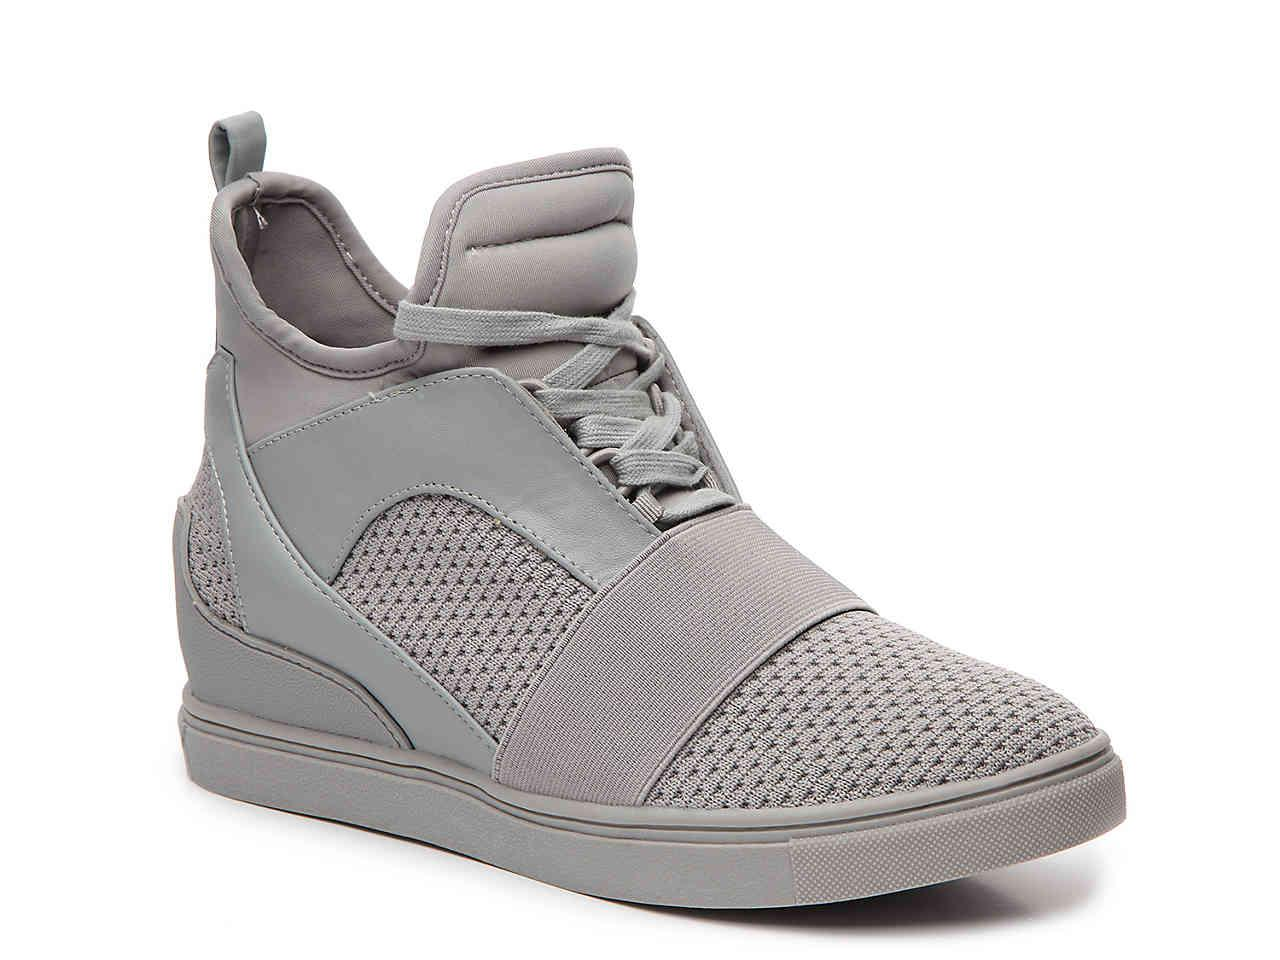 bc254a9895a Lyst - Steve Madden Lexi Wedge Sneaker in Gray